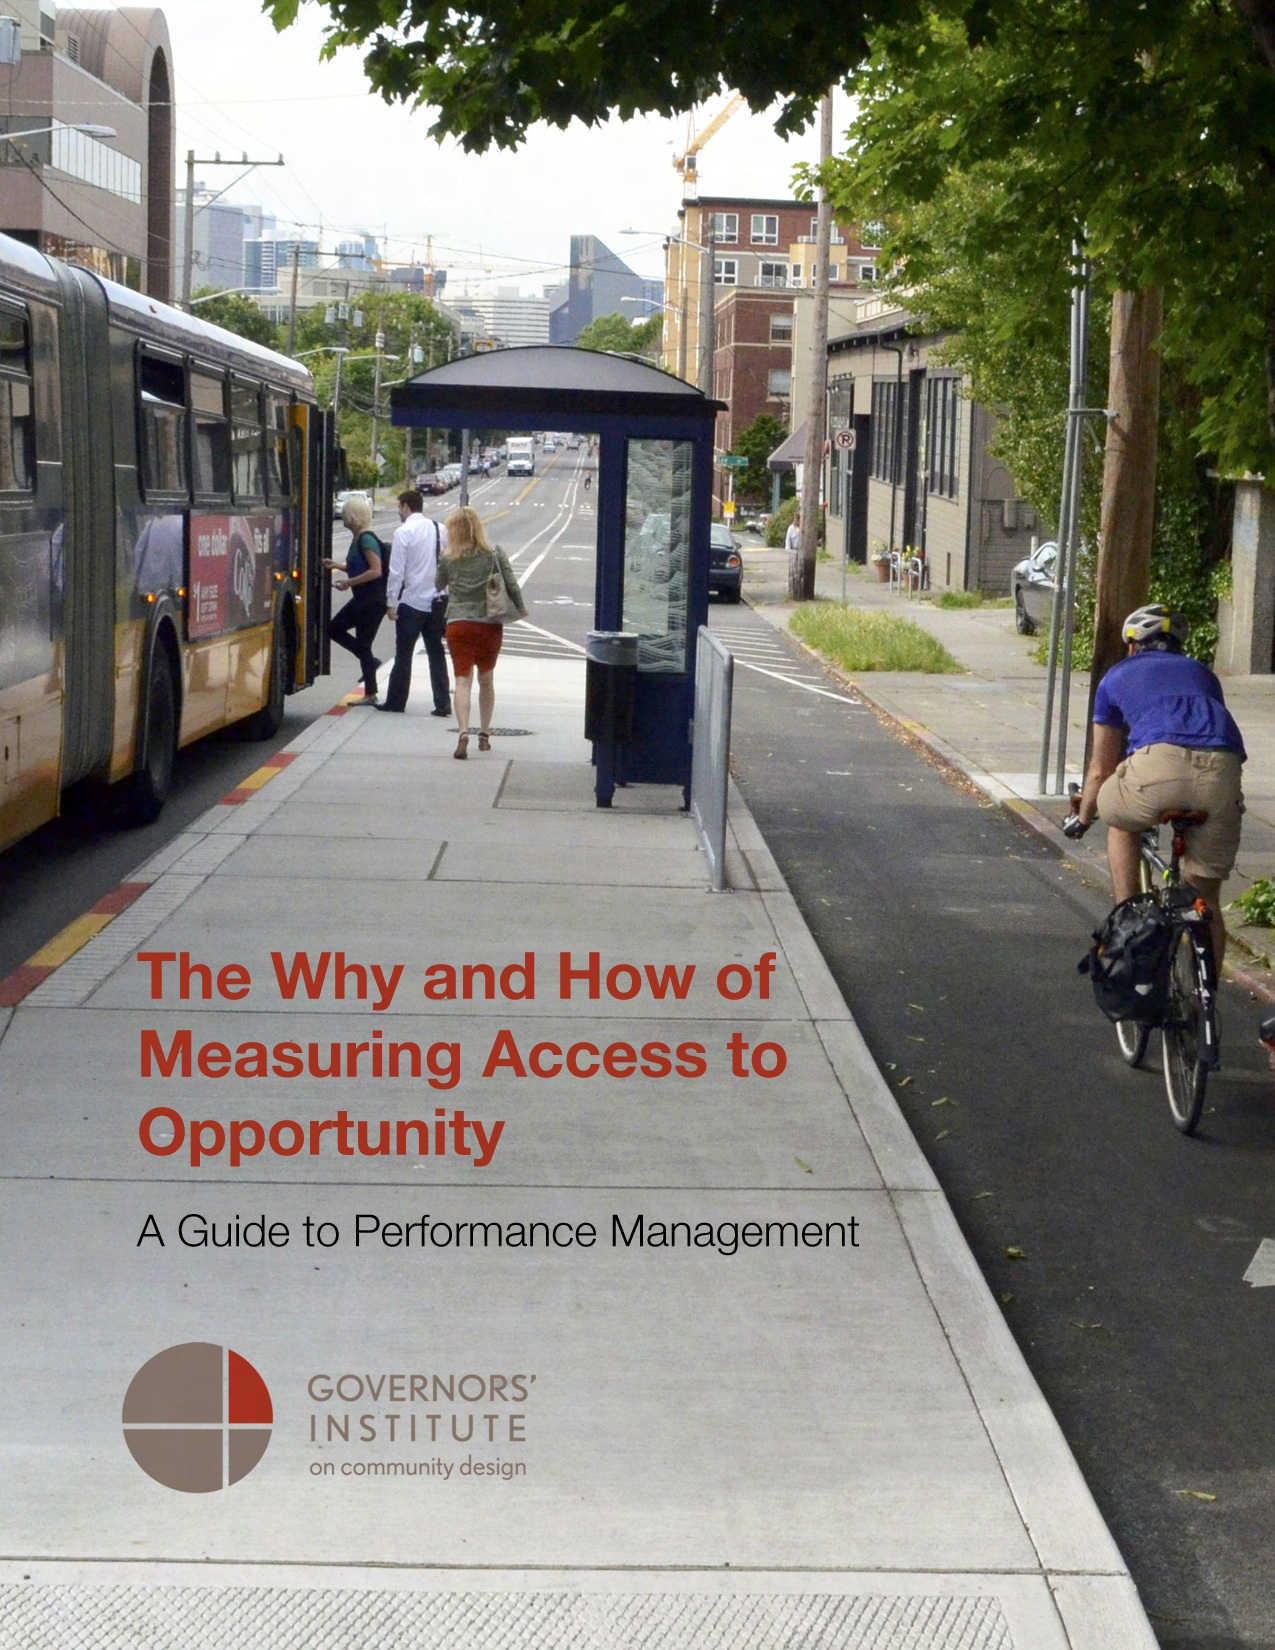 The Why and How of Measuring Access to Opportunity: A Guide to Performance Management